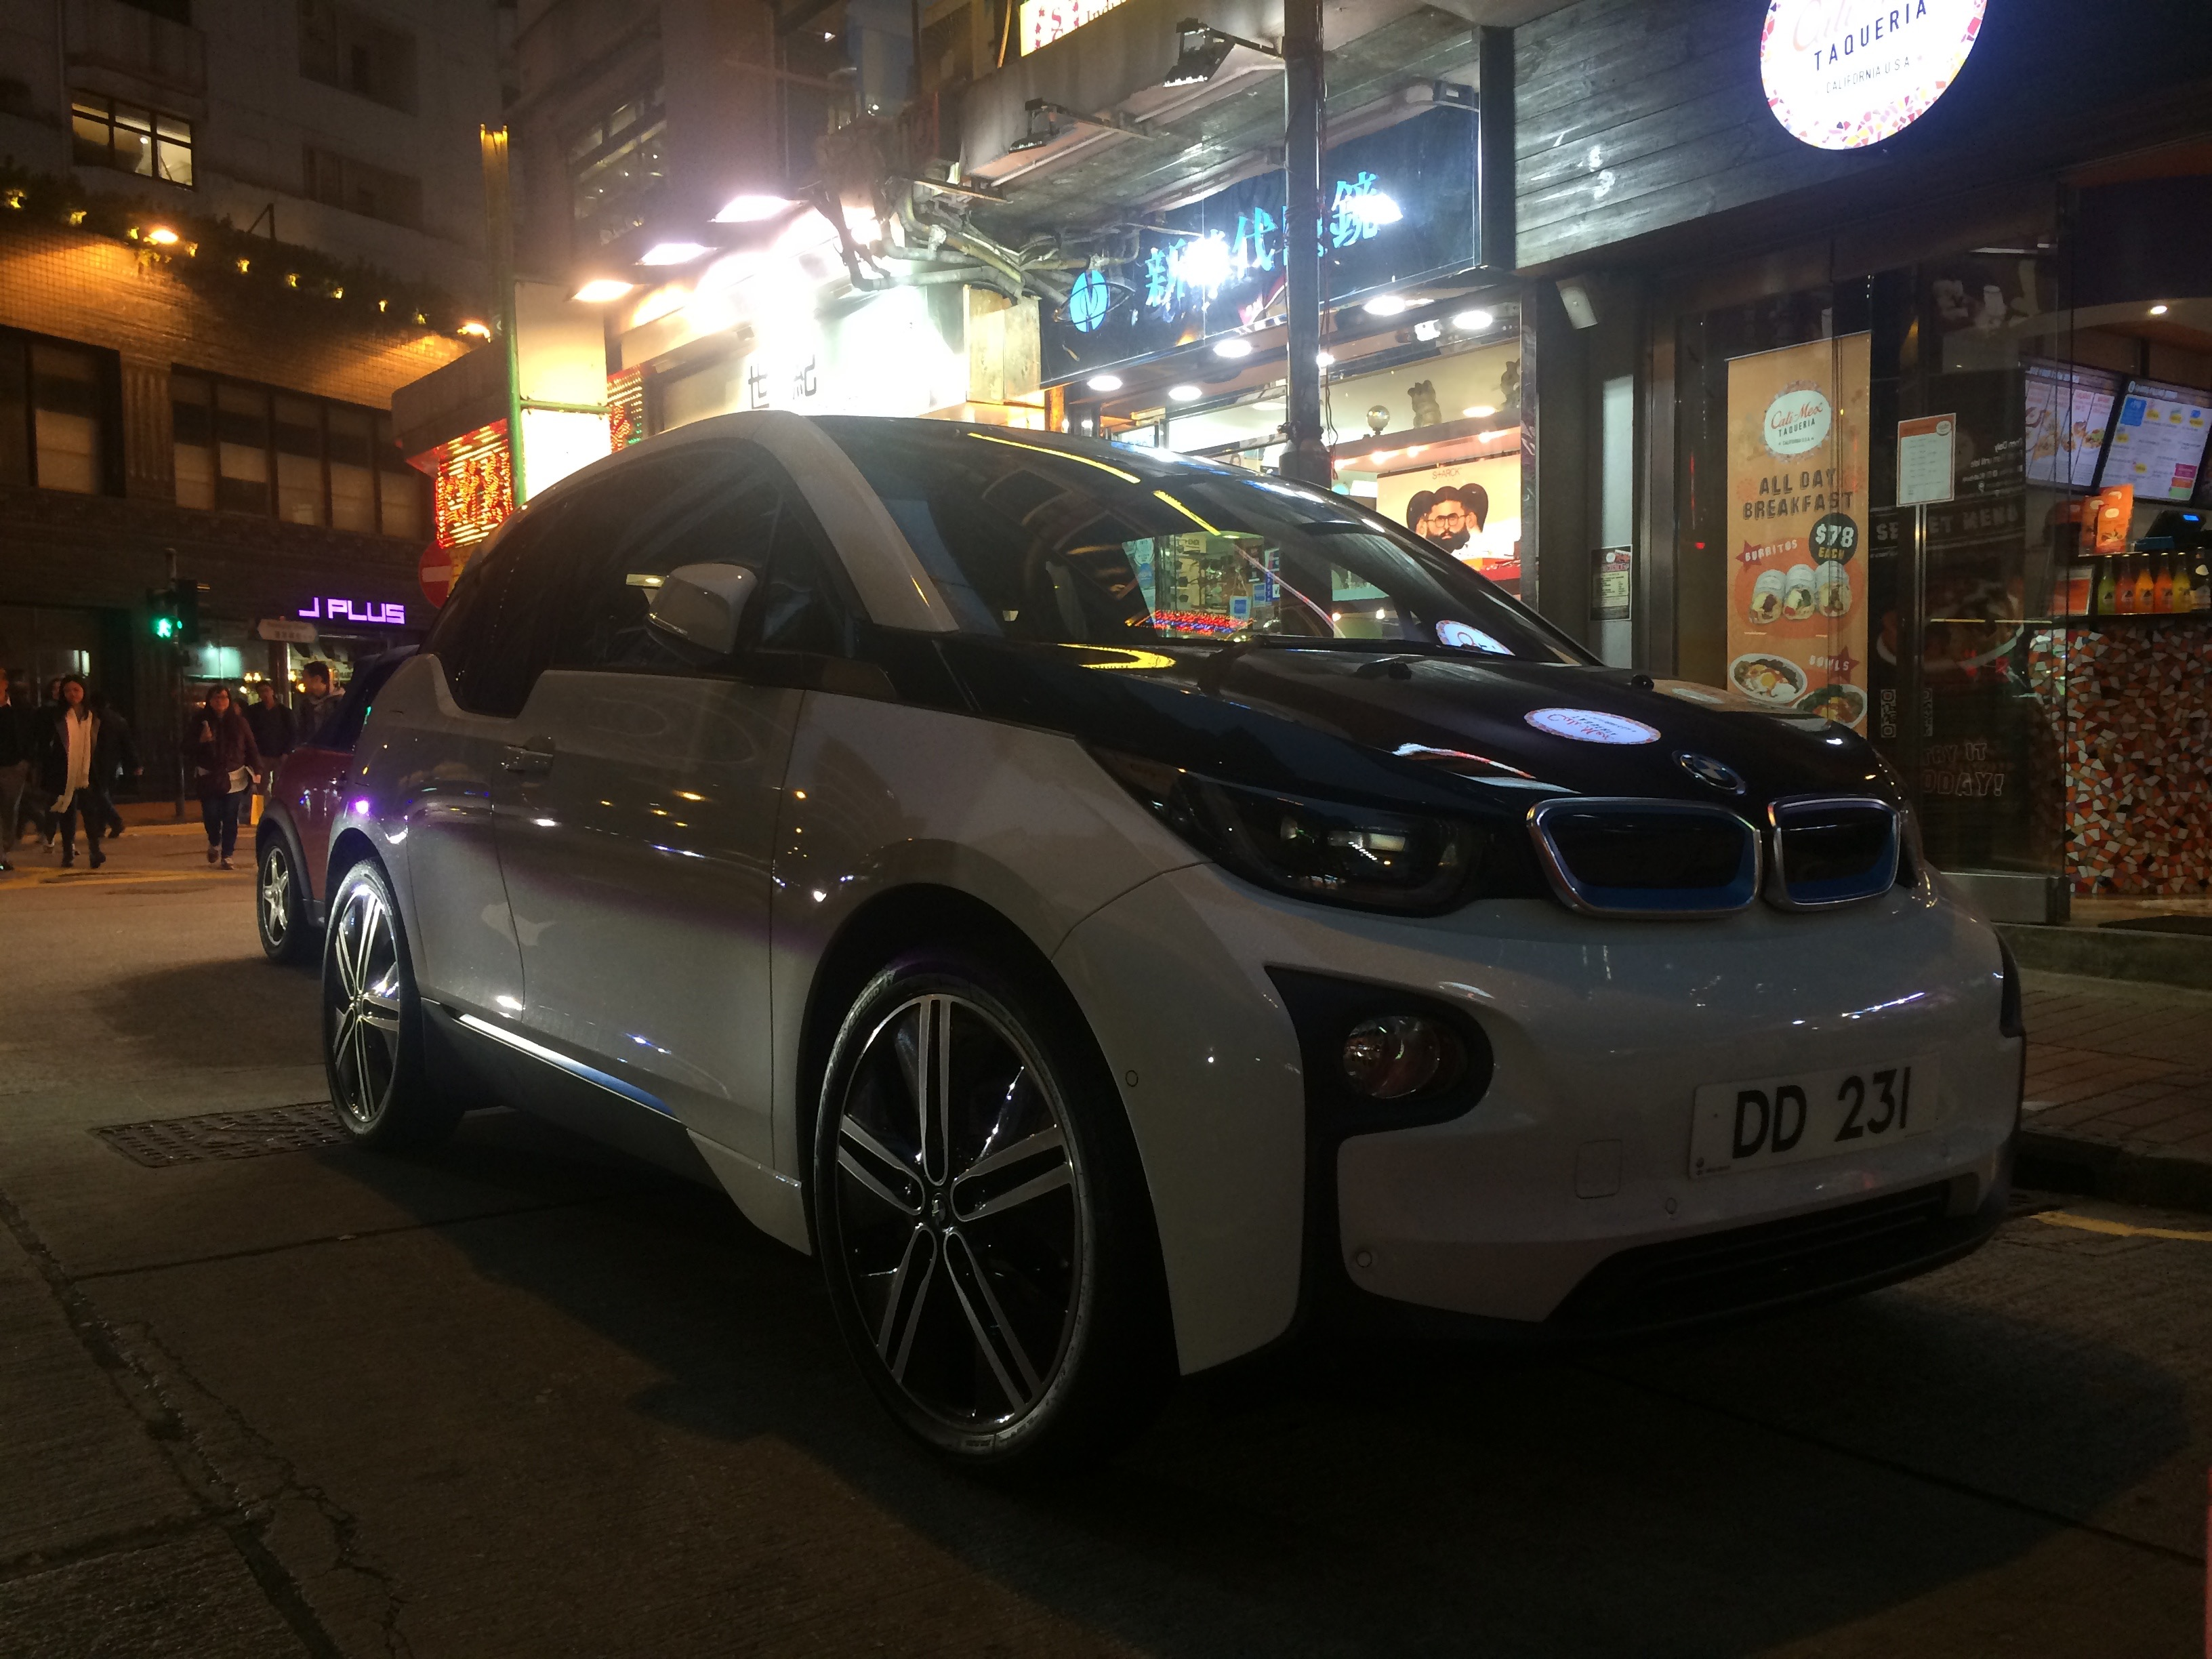 BMW i3 in Hong Kong Wan Chai area